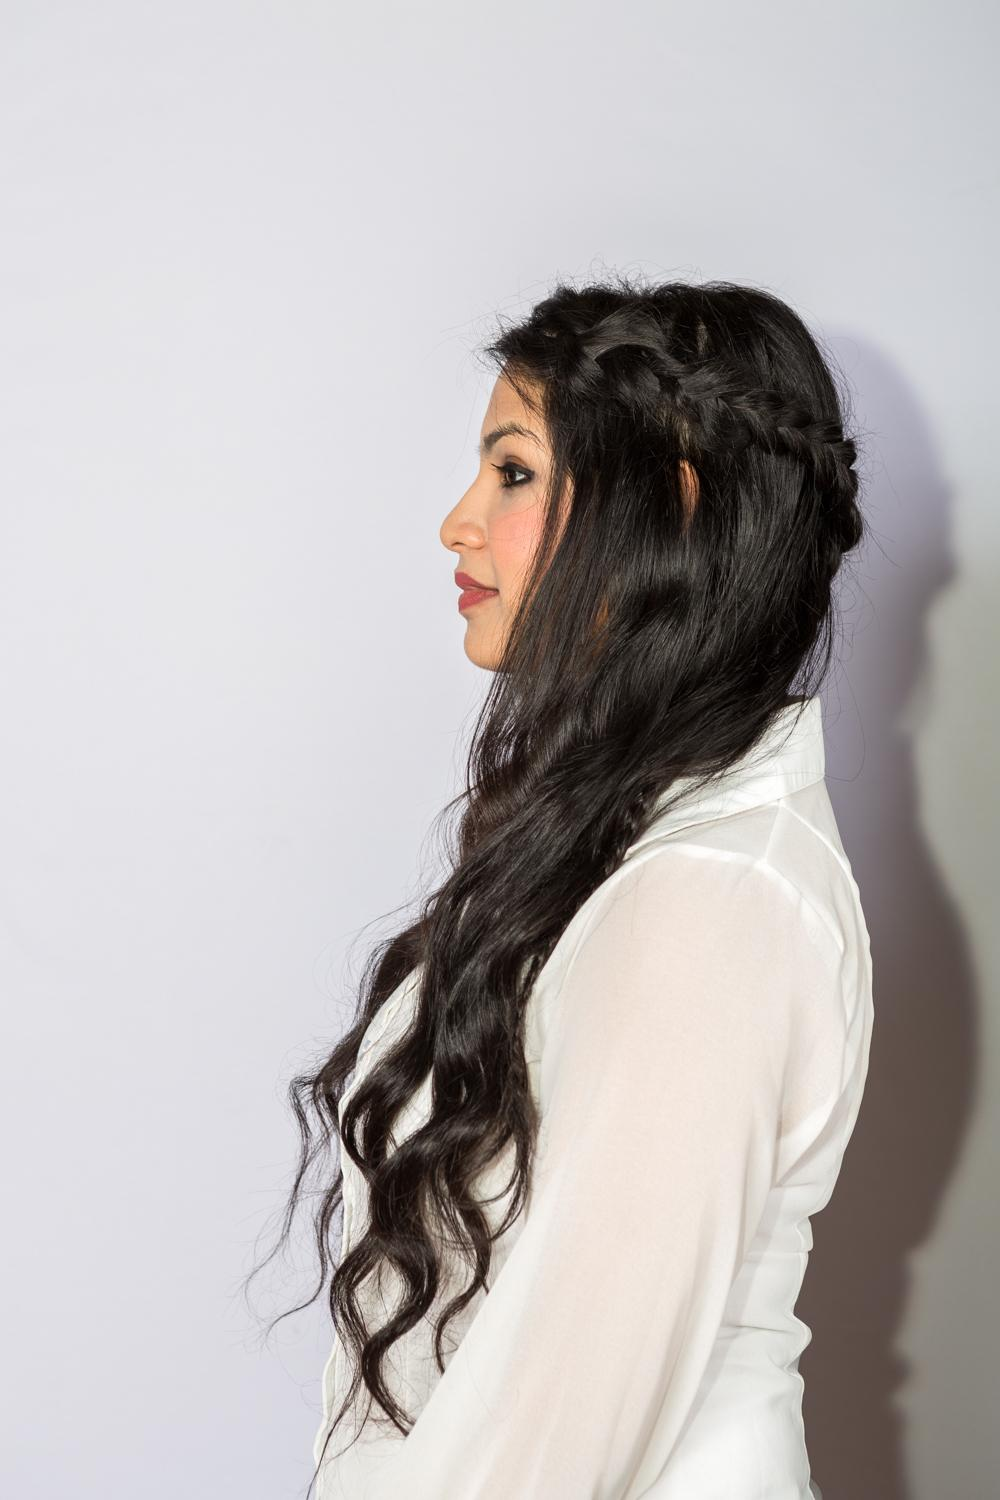 Naturally wavy hair: All Things Hair - IMAGE - Braids and waves